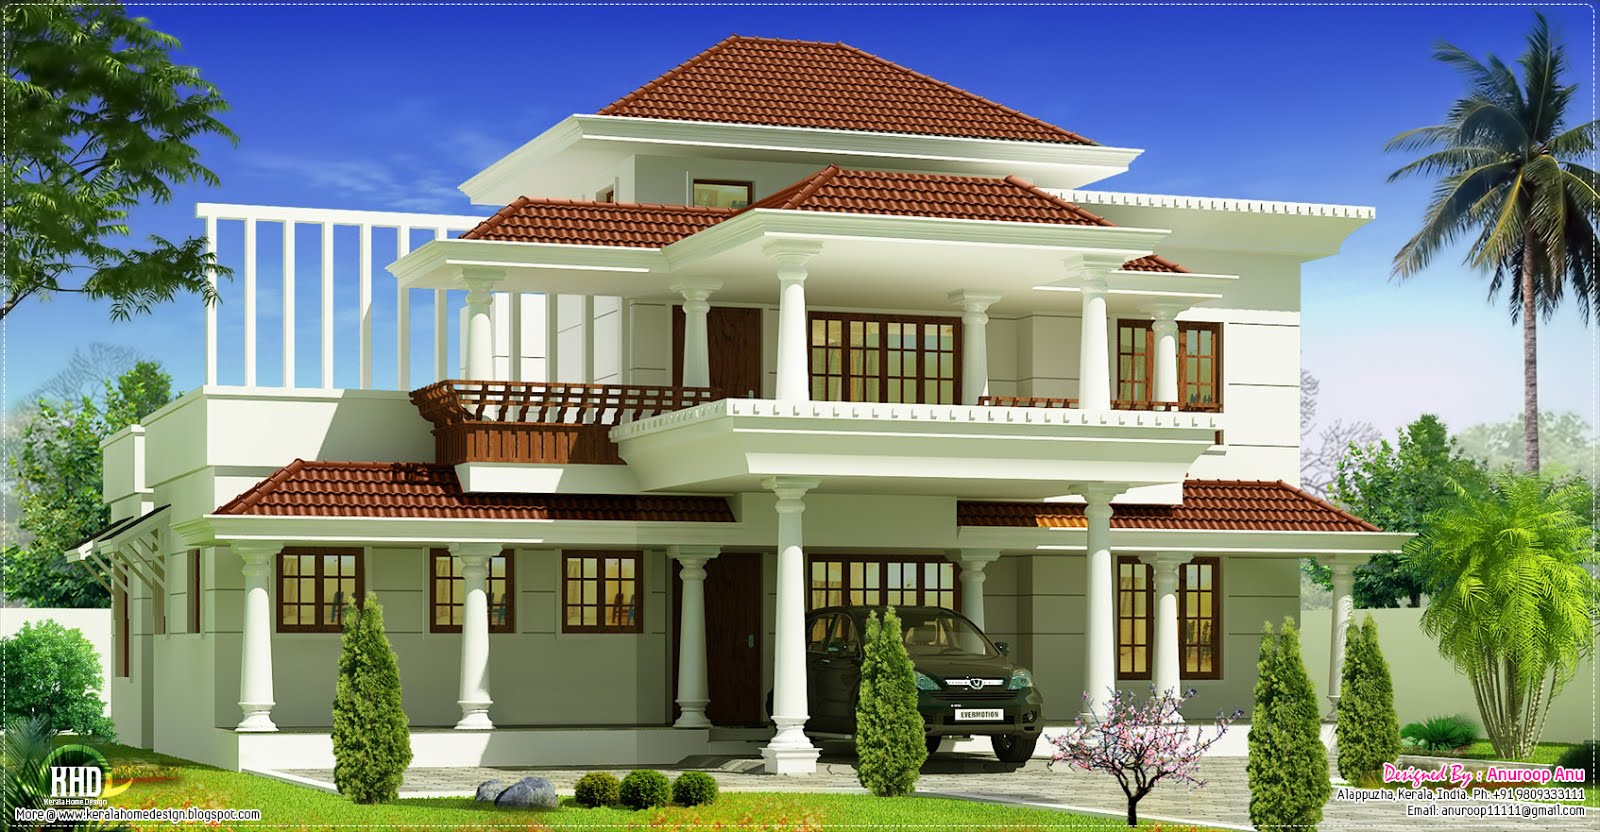 Kerala house models houses plans designs for Model home plans